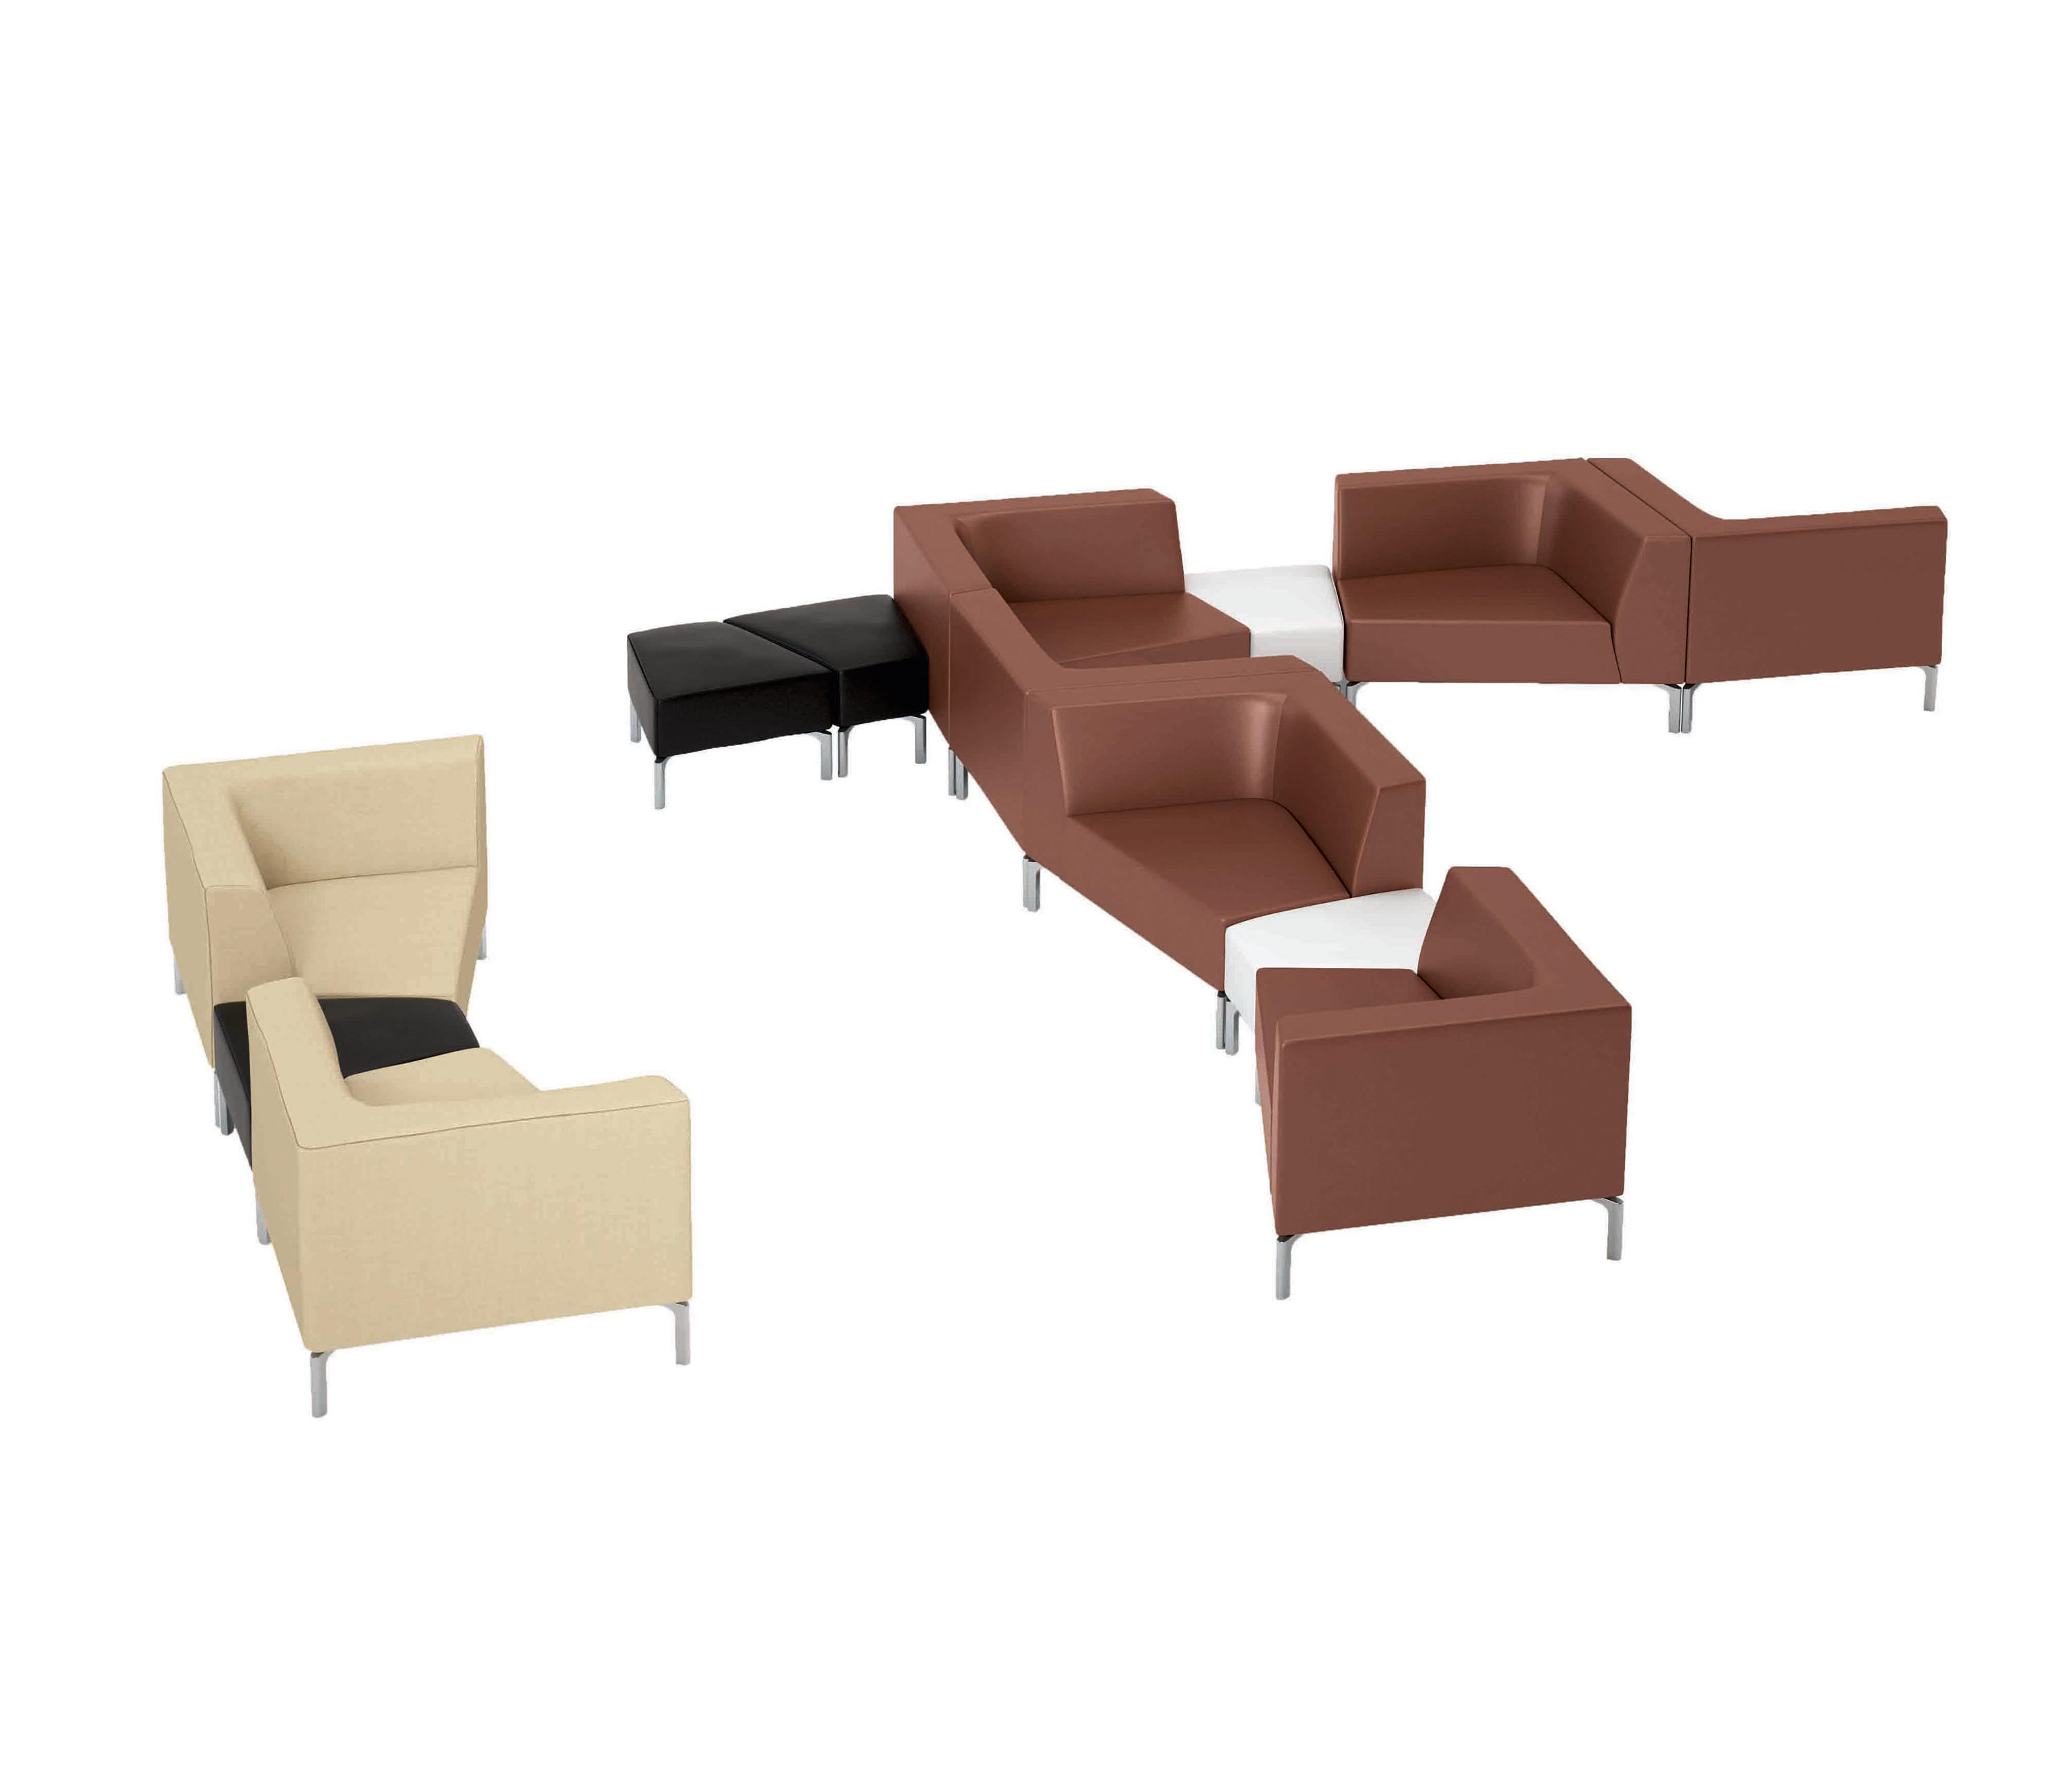 tangramis5 loungesofas von interstuhl b rom bel gmbh co kg architonic. Black Bedroom Furniture Sets. Home Design Ideas